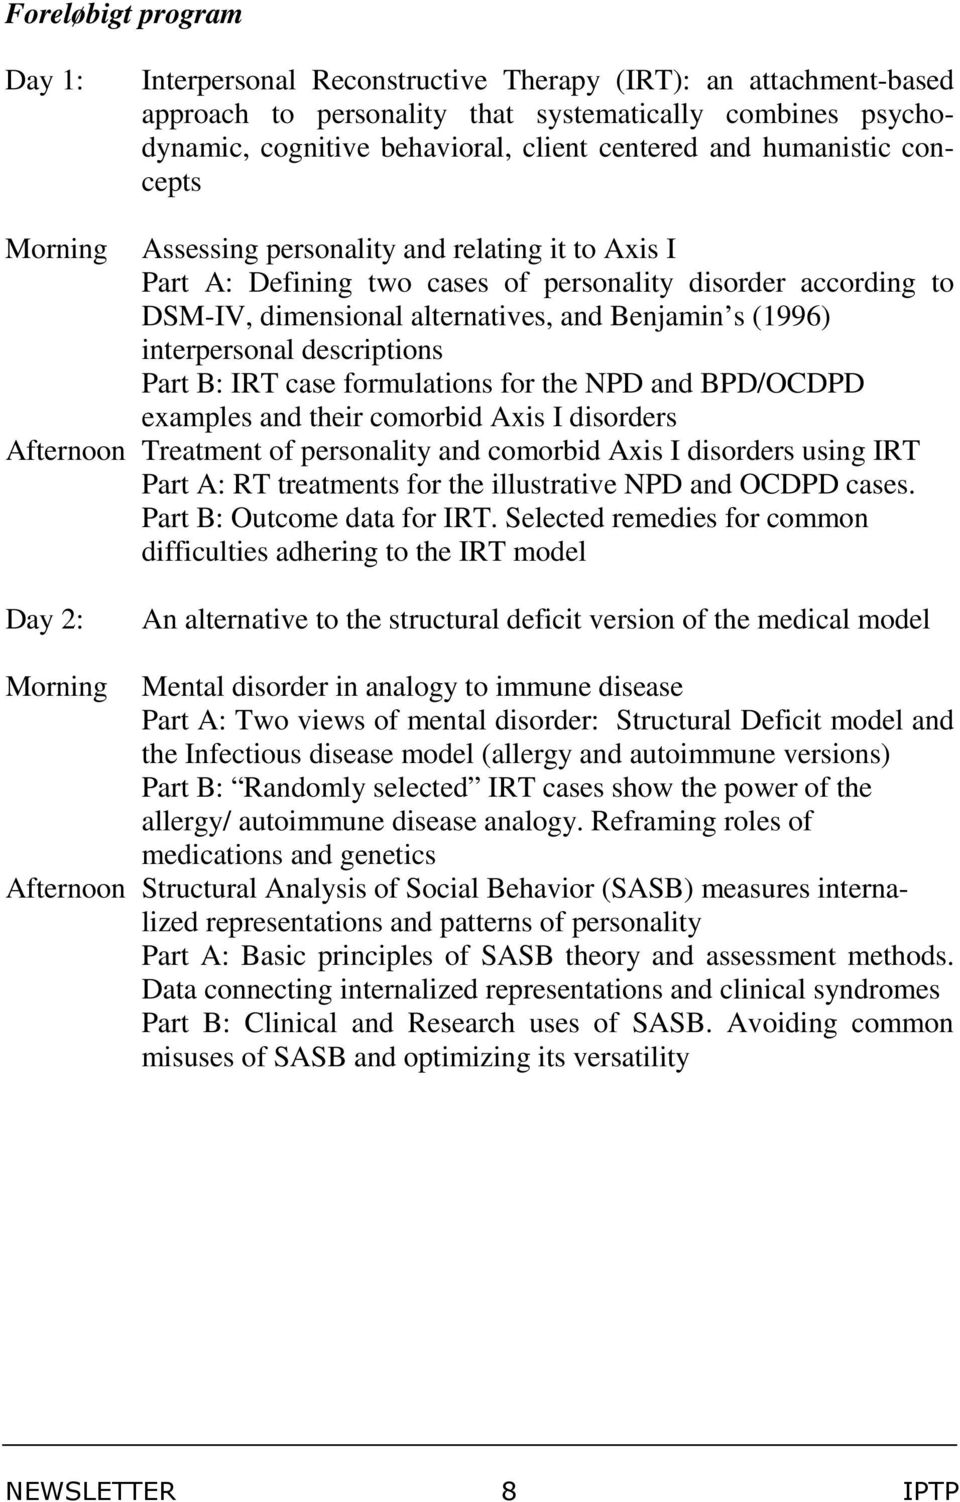 interpersonal descriptions Part B: IRT case formulations for the NPD and BPD/OCDPD examples and their comorbid Axis I disorders Afternoon Treatment of personality and comorbid Axis I disorders using